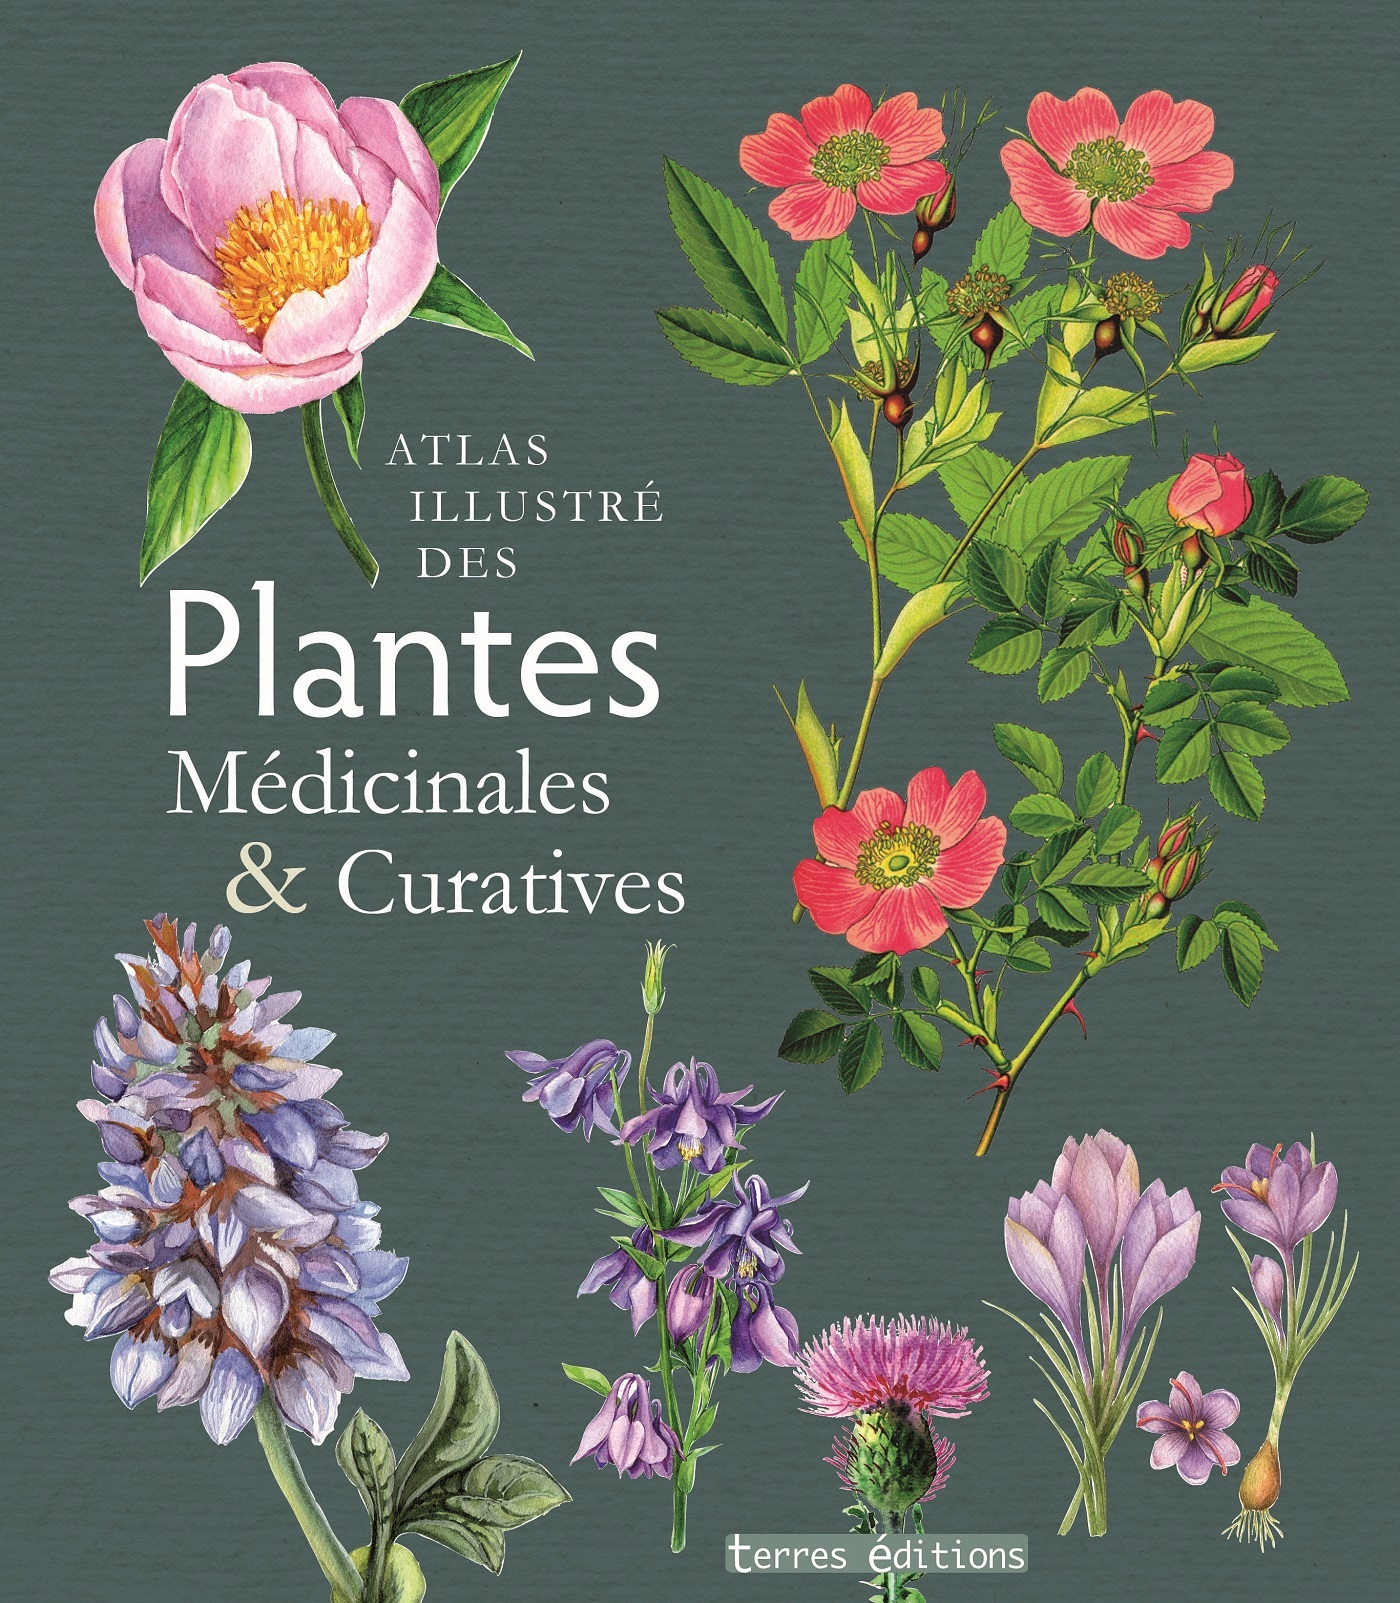 ATLAS ILLUSTRE DES PLANTES MEDICINALES ET CURATIVES